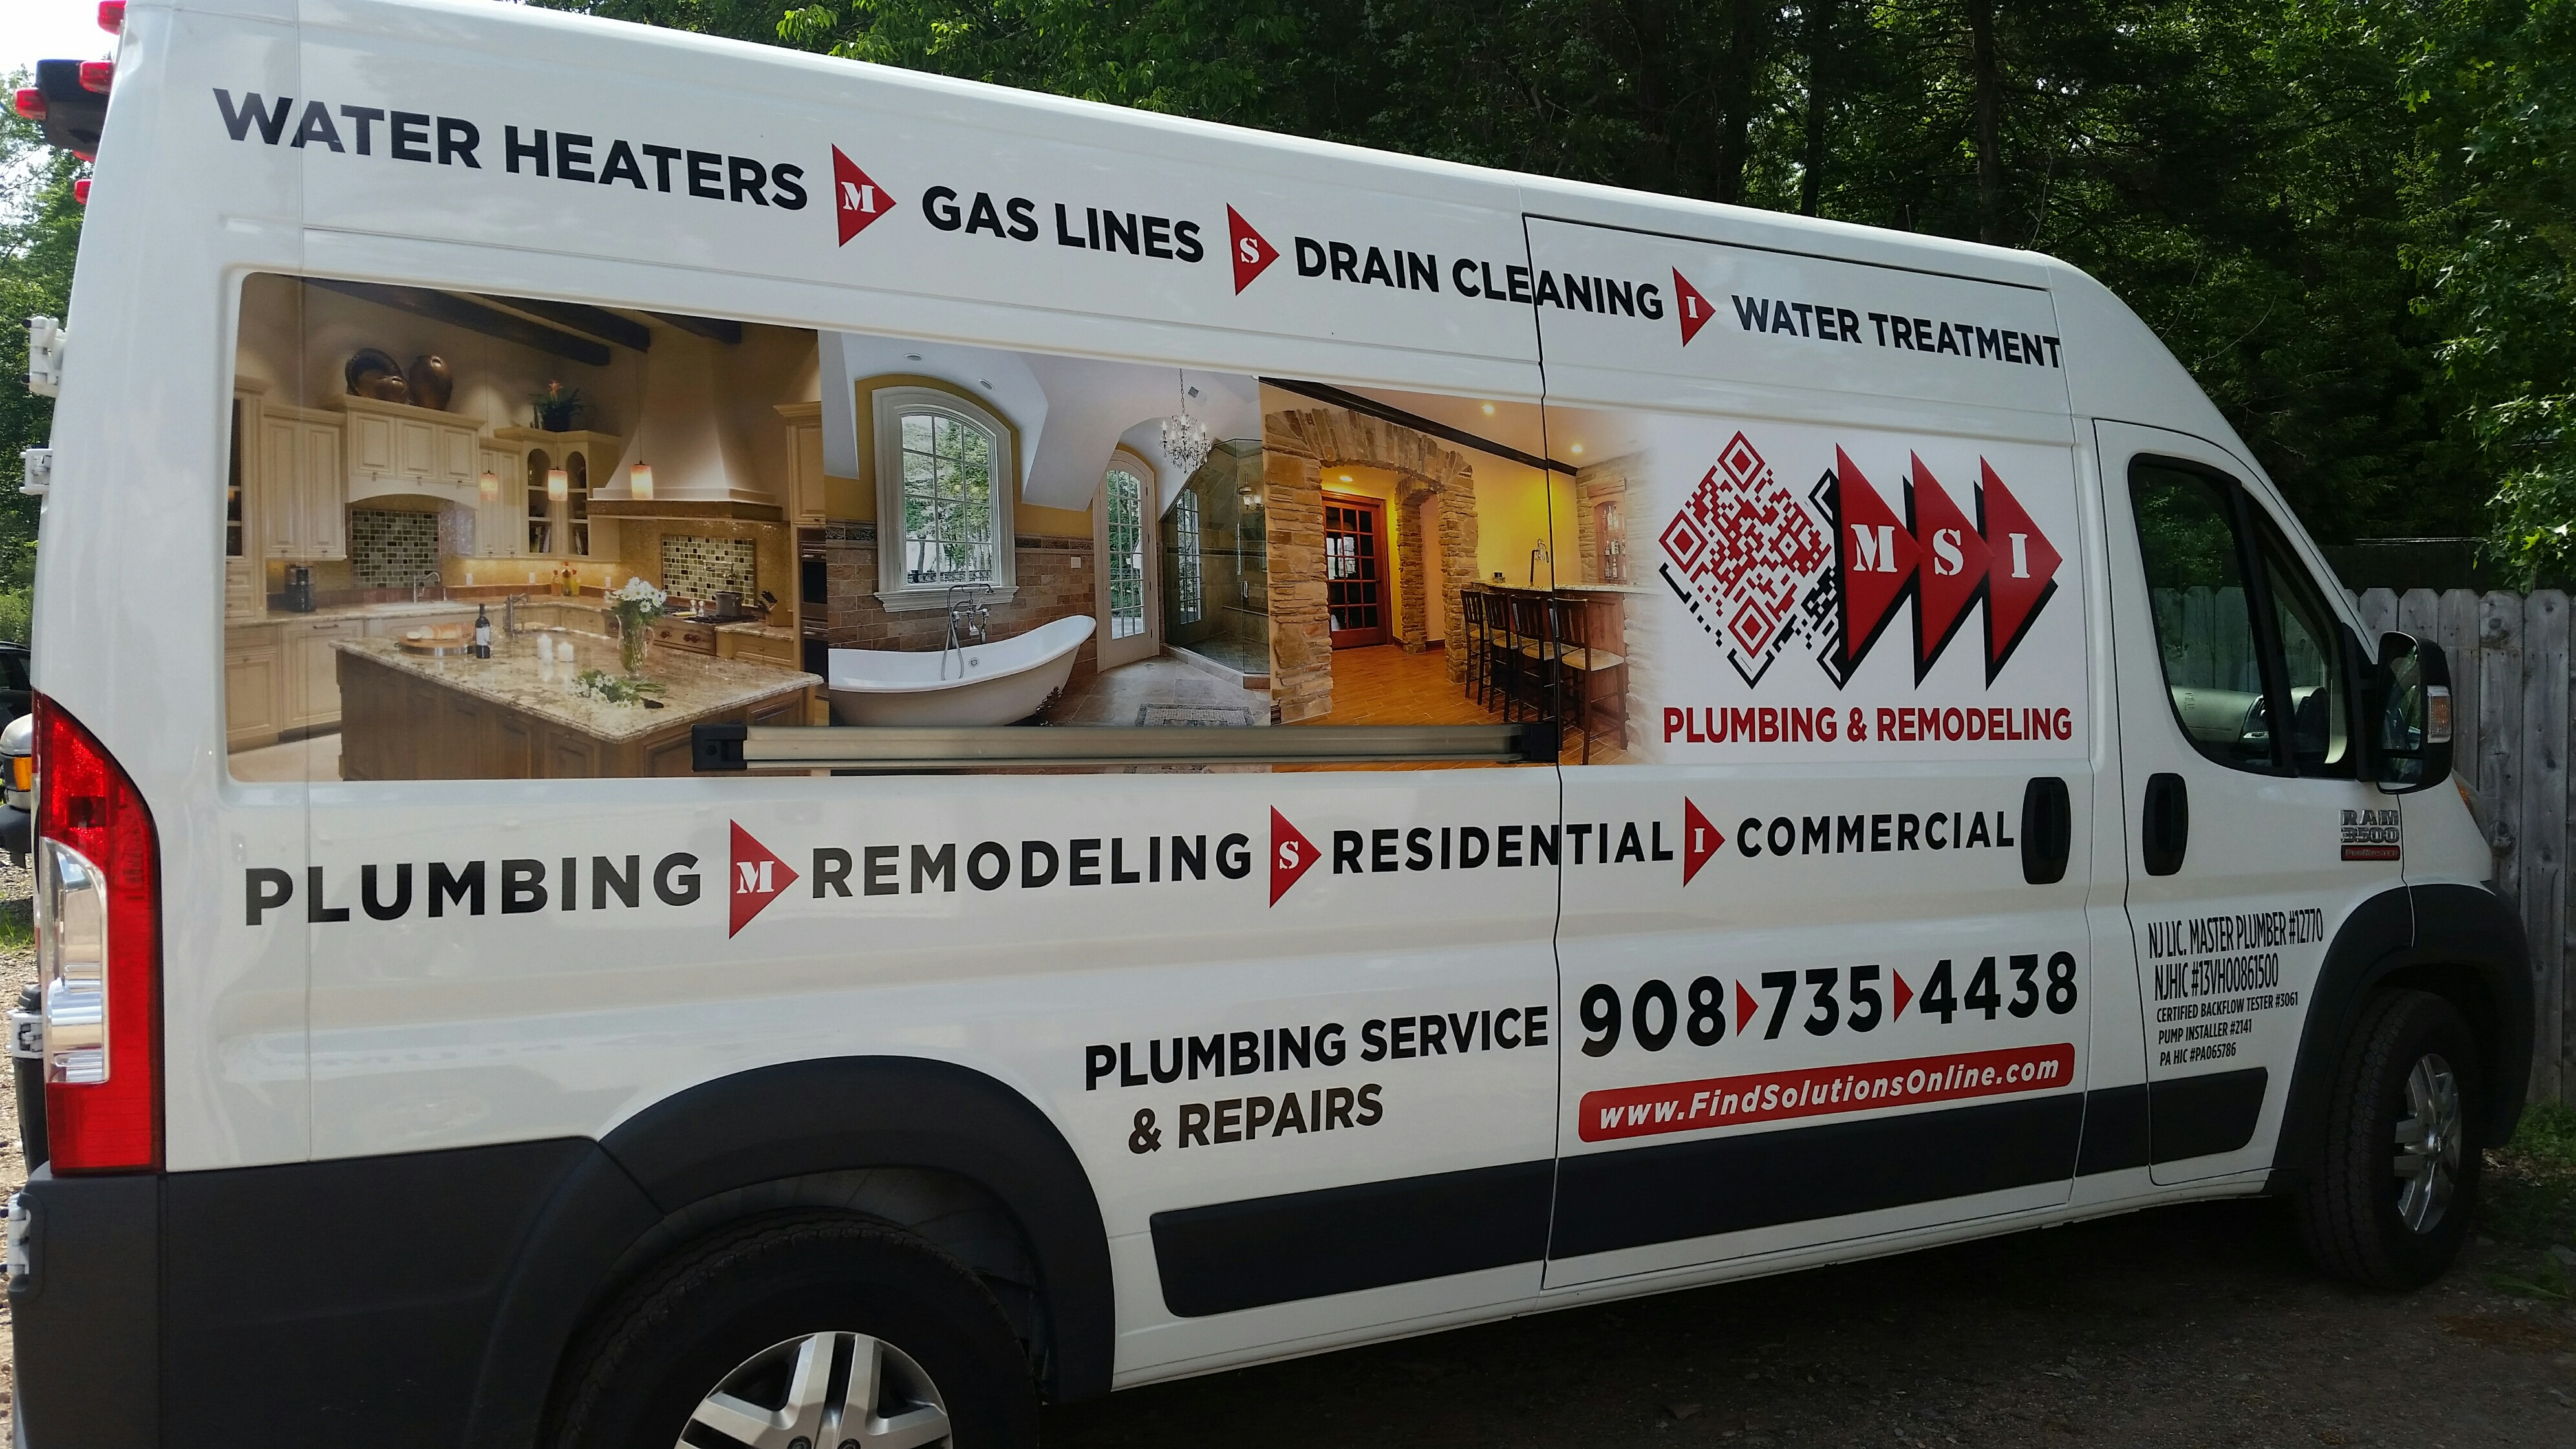 MSI Plumbing and Remodeling